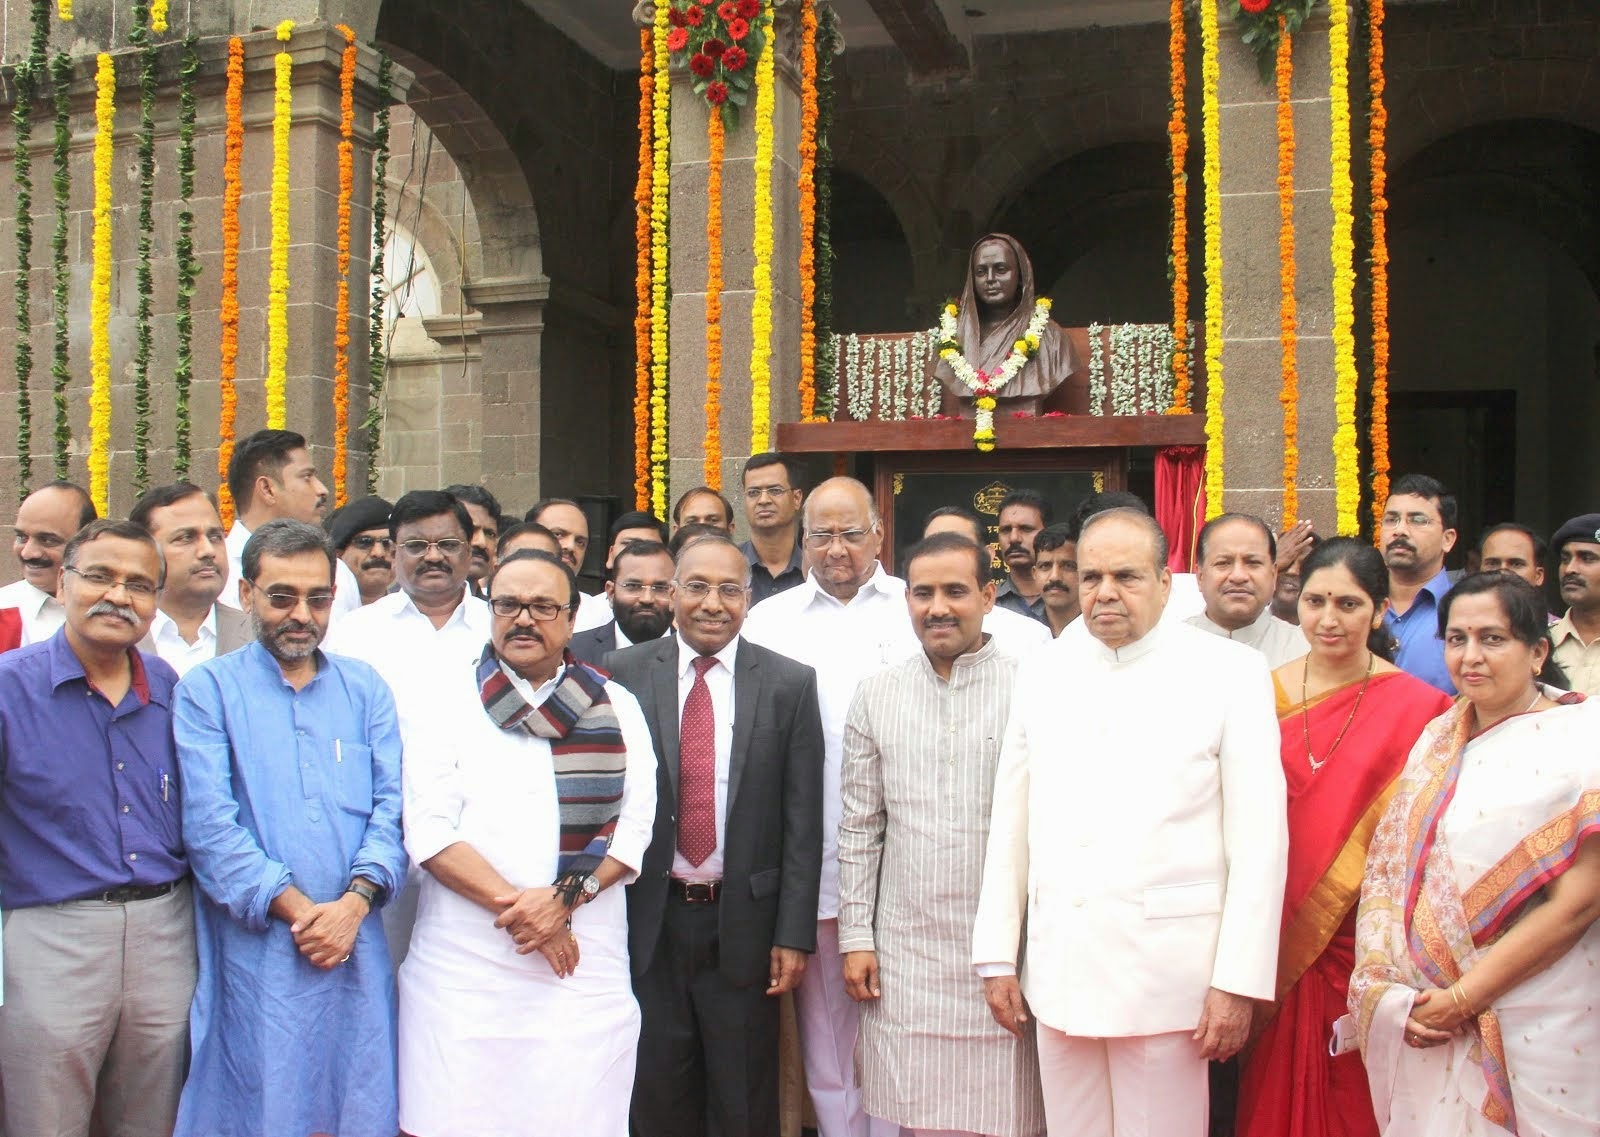 Renaming Ceremony of Savitribai Phule Pune University